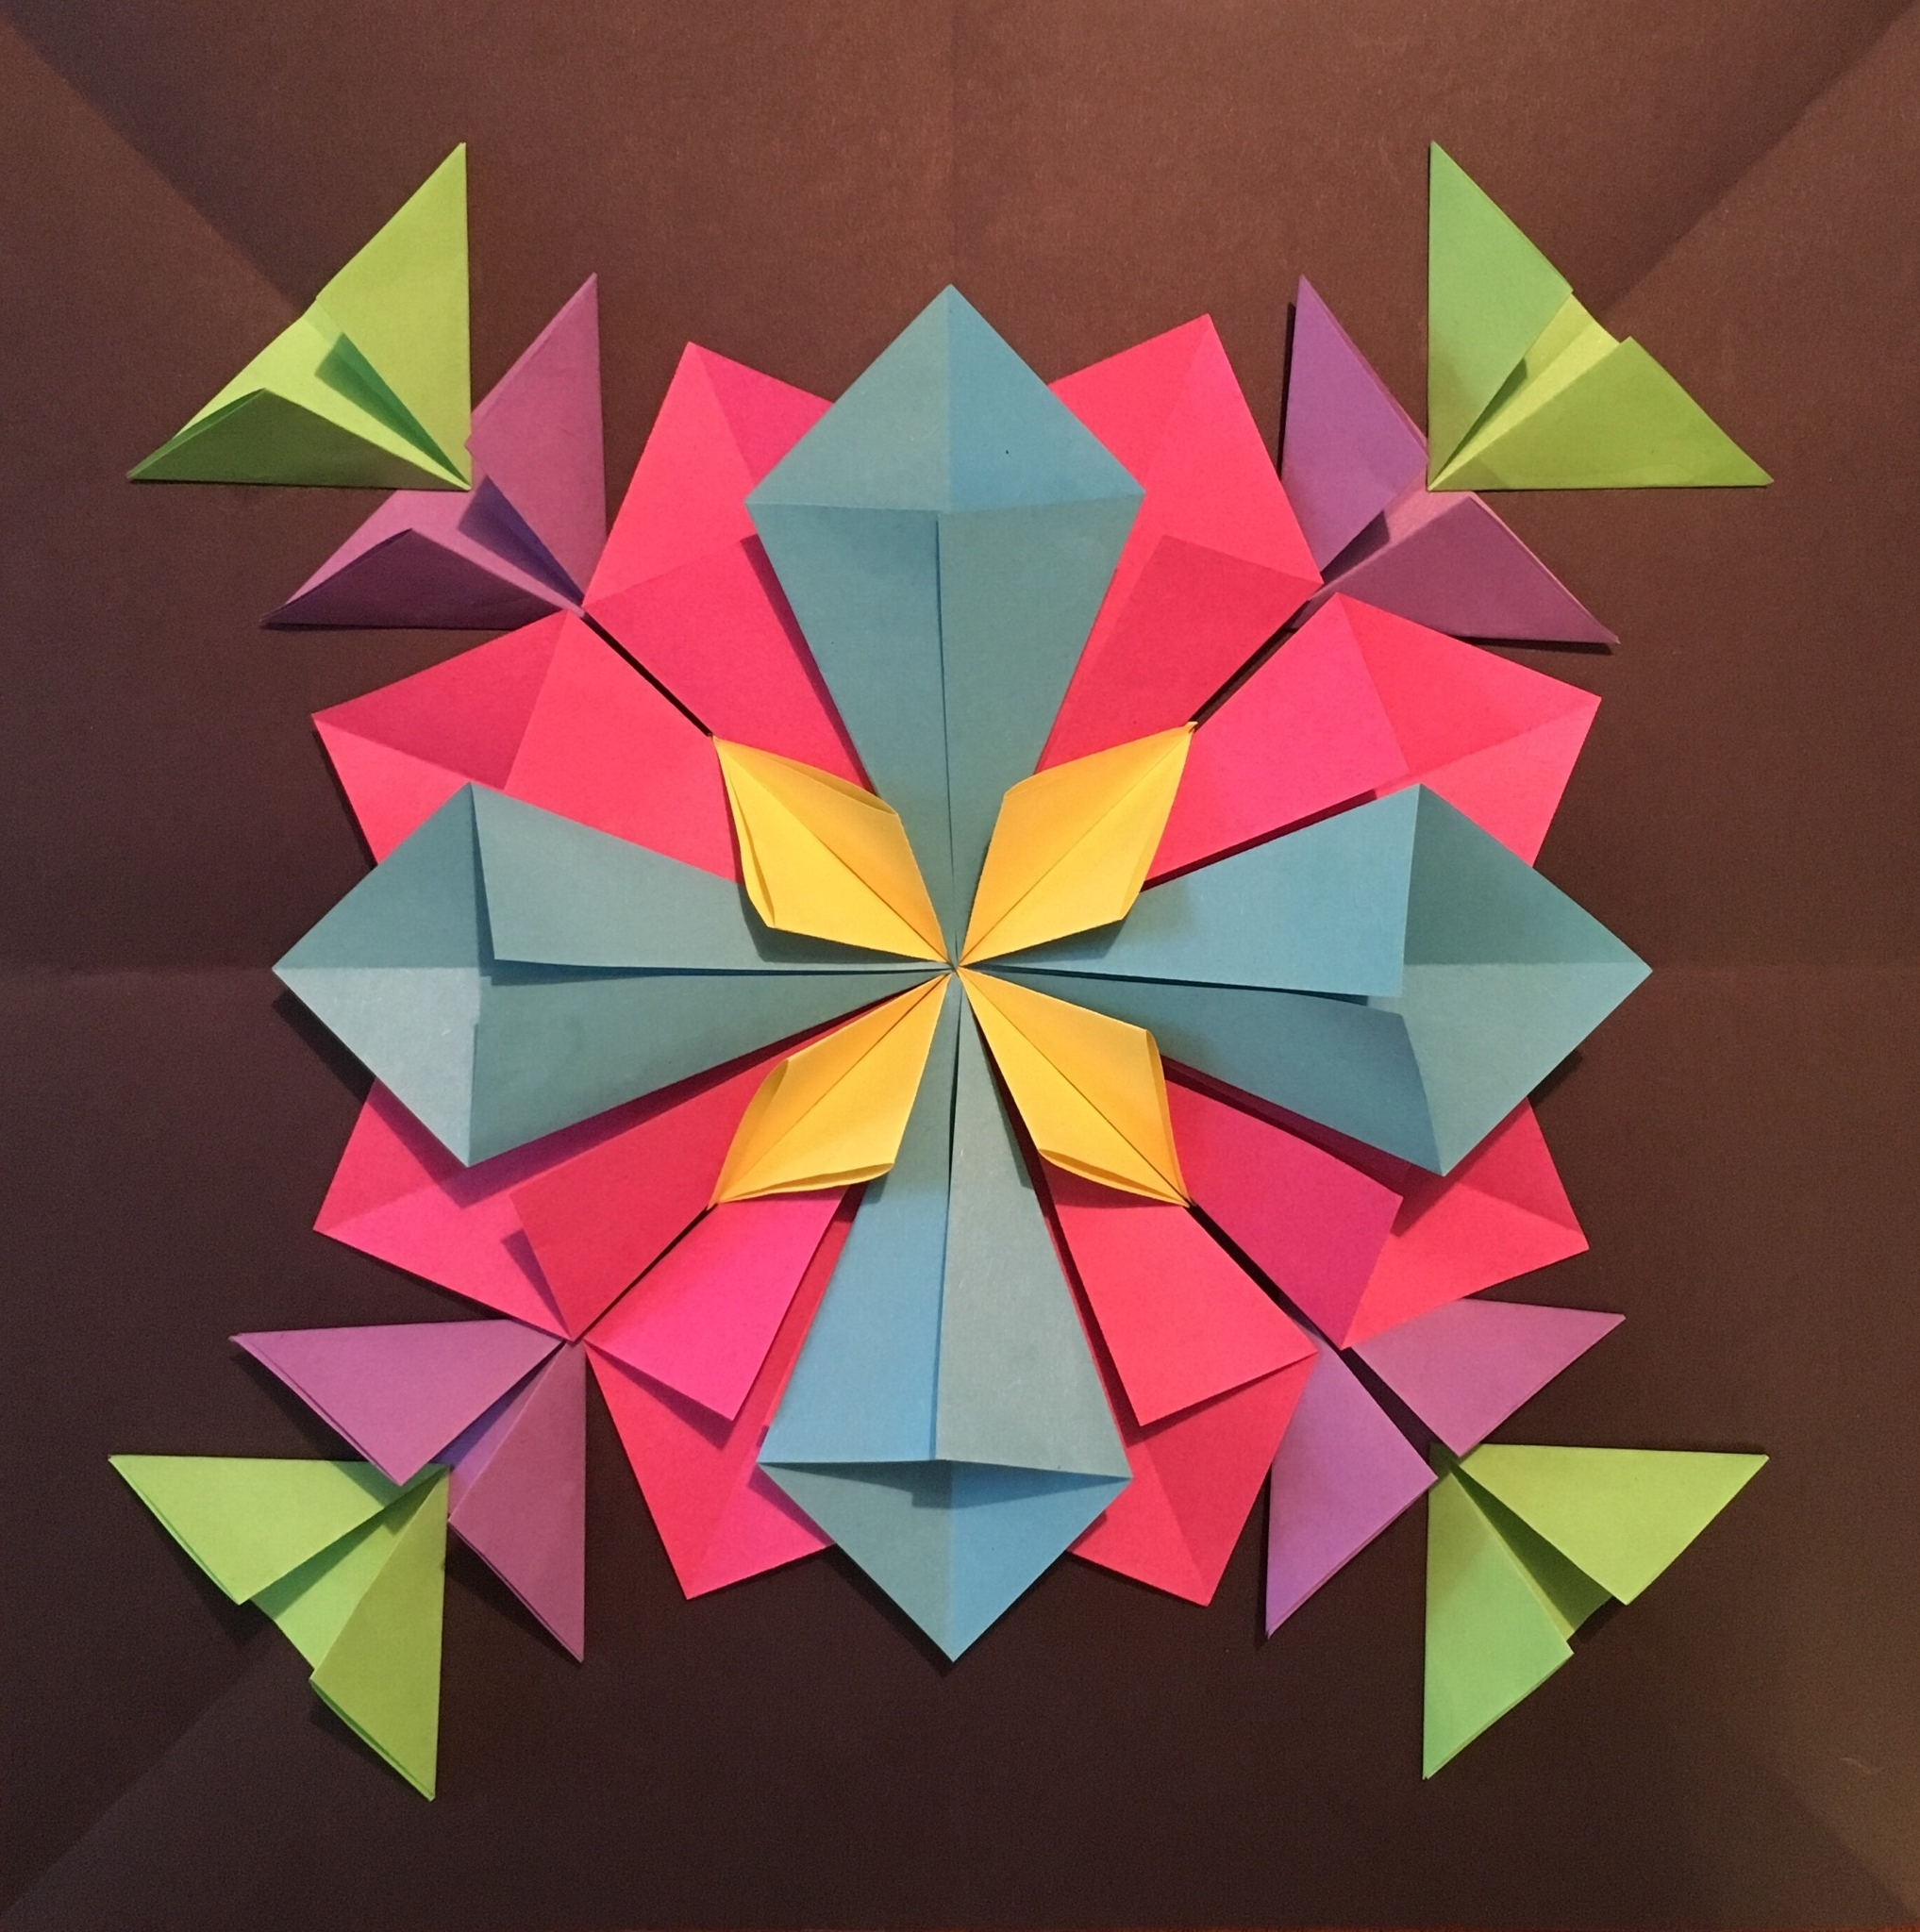 Preferred How To Create A 3D Radial Symmetry Paper Sculpture (View 11 of 15)